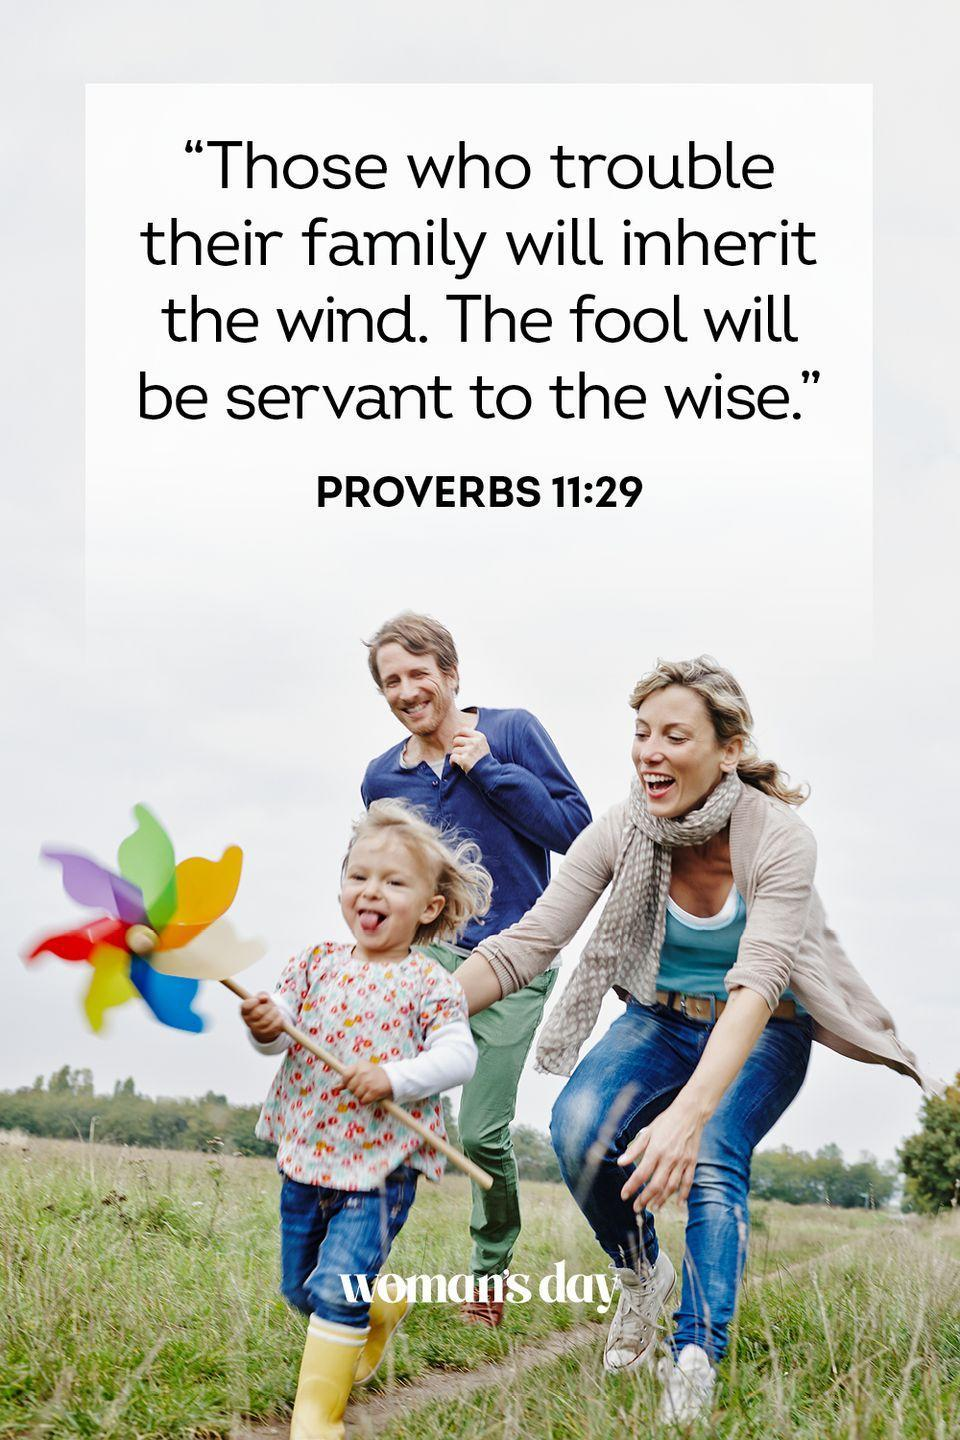 """<p>""""Those who trouble their family will inherit the wind. The fool will be servant to the wise."""" — Proverbs 11:29</p><p><strong>The Good News: </strong>If you bring trouble and harm to your family, you will gain absolutely nothing. But if you care and bring love to your home, you will only gain the same in return.</p>"""